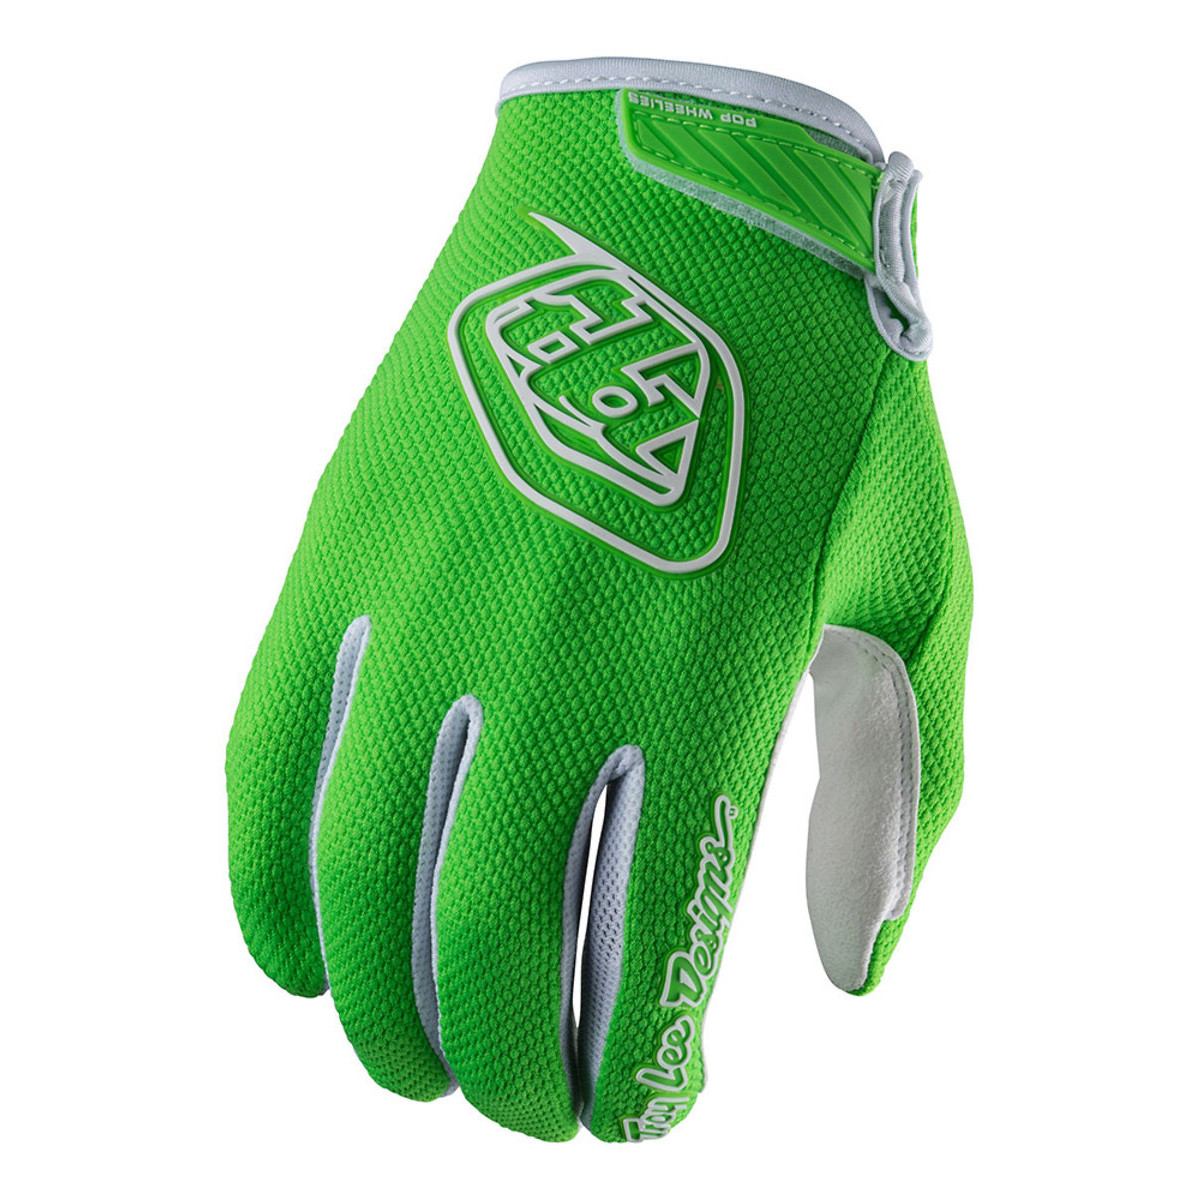 Troy Lee Designs Gloves AIR ADULT ALL SIZES TLD MTB DH Bike Motocross BMX Gear Gloves